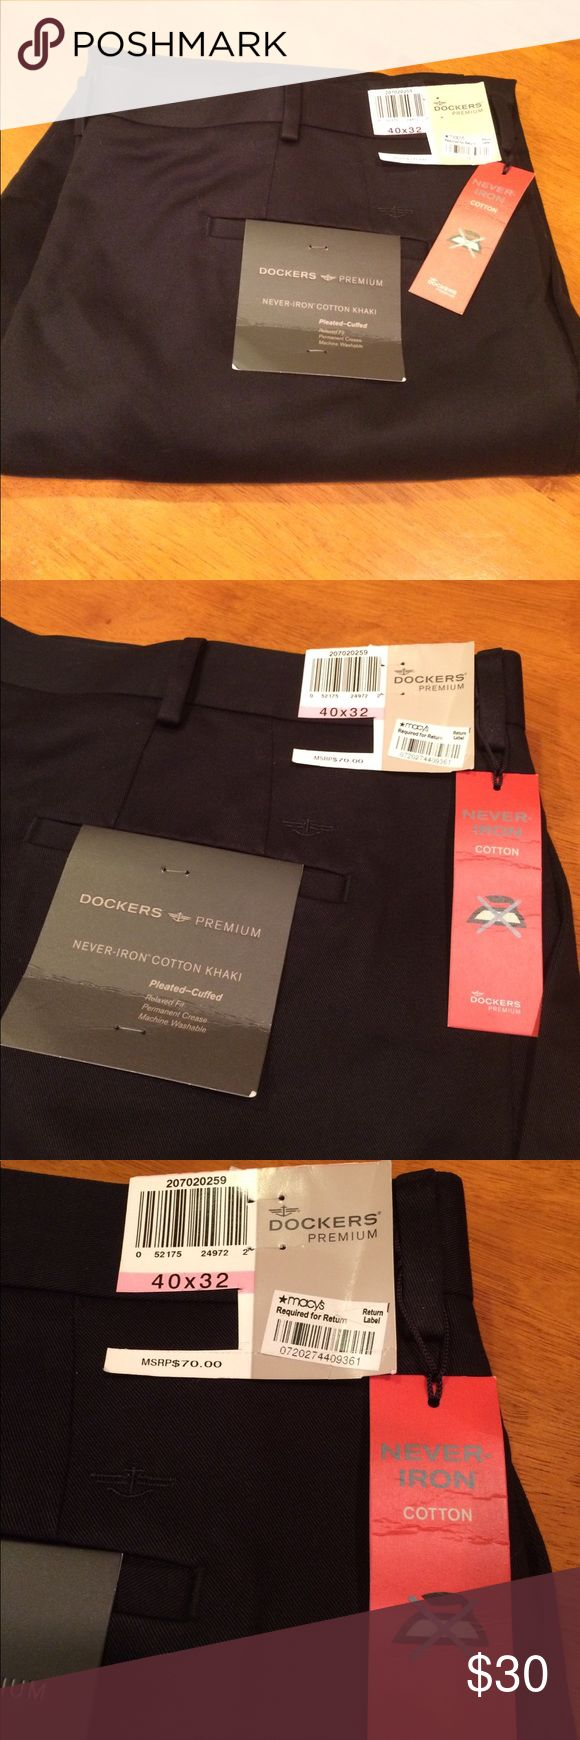 Premium Dockers - NWT size 40/32 Brand new with tags! Posting for my neighbor. Funny how she heard I like Poshmark and she asked me to post these. Bought while they were away and her husband never wore them. Still have Macy's return label on them. We are in Key West. Closest Macy's is a 4 hour drive. That's not happening!  Super nice Docker's! Dockers Pants Chinos & Khakis